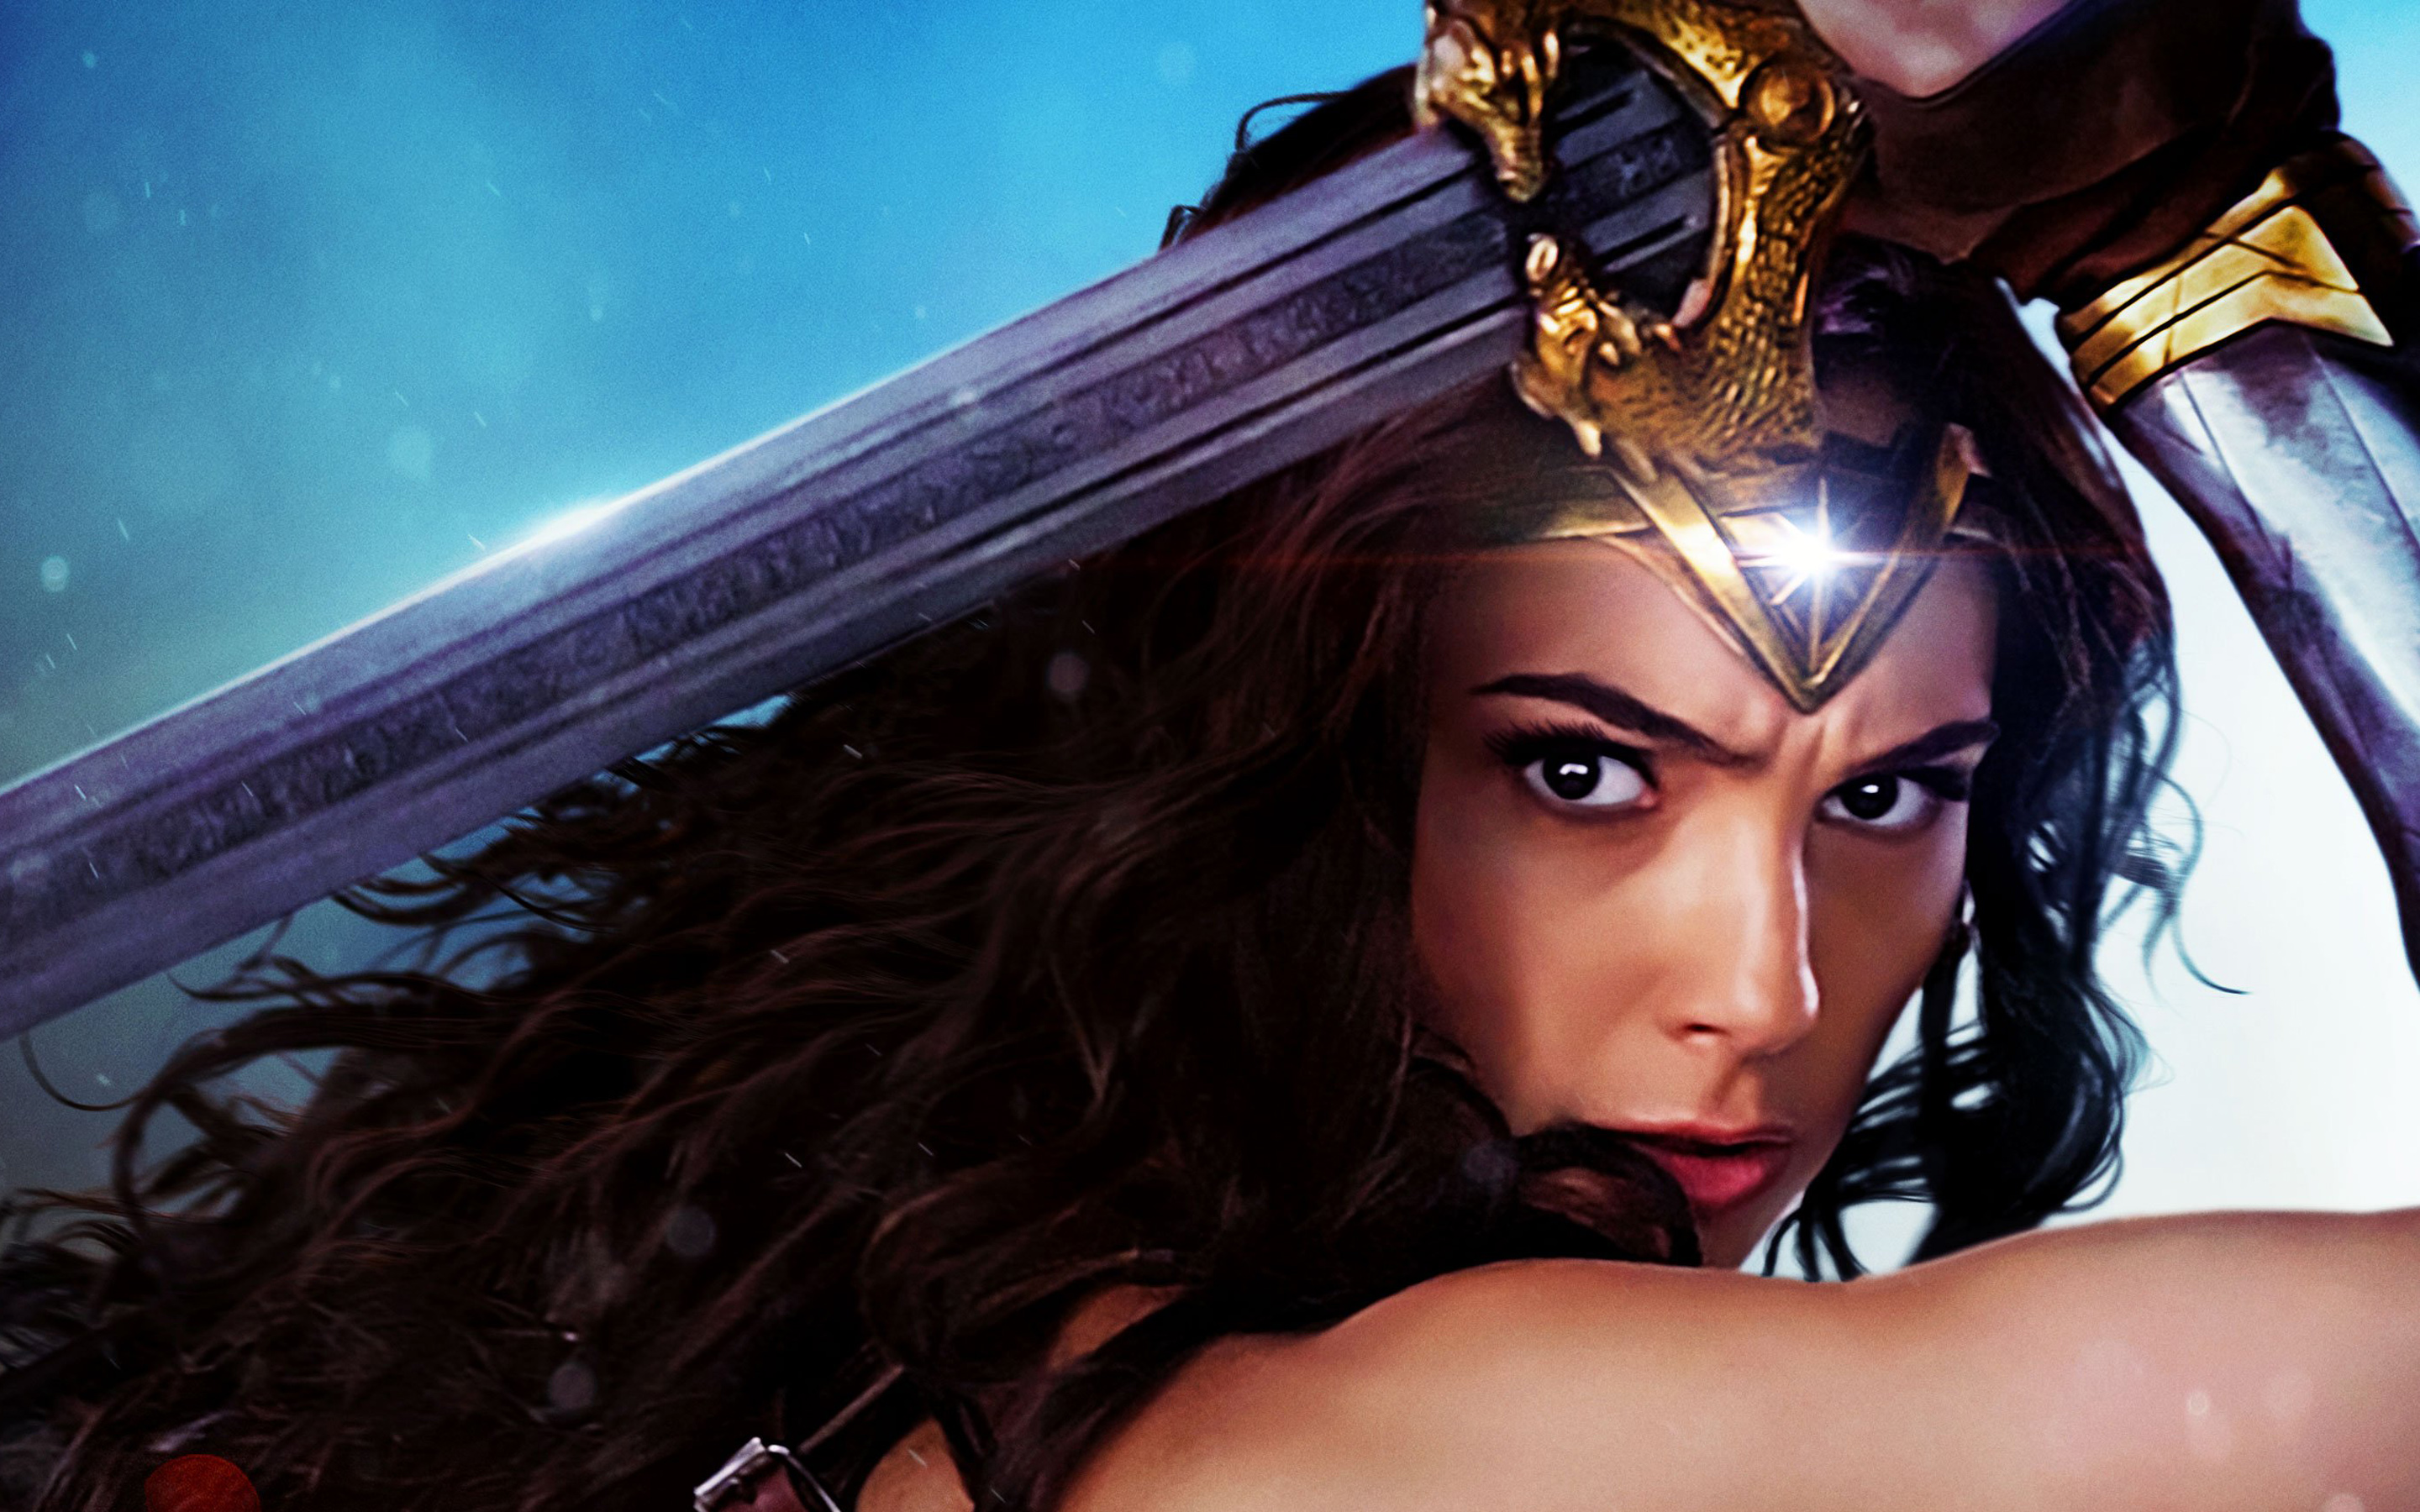 Wonder Woman holds her sword over her head, looking serious. The star in her tiara gleams.